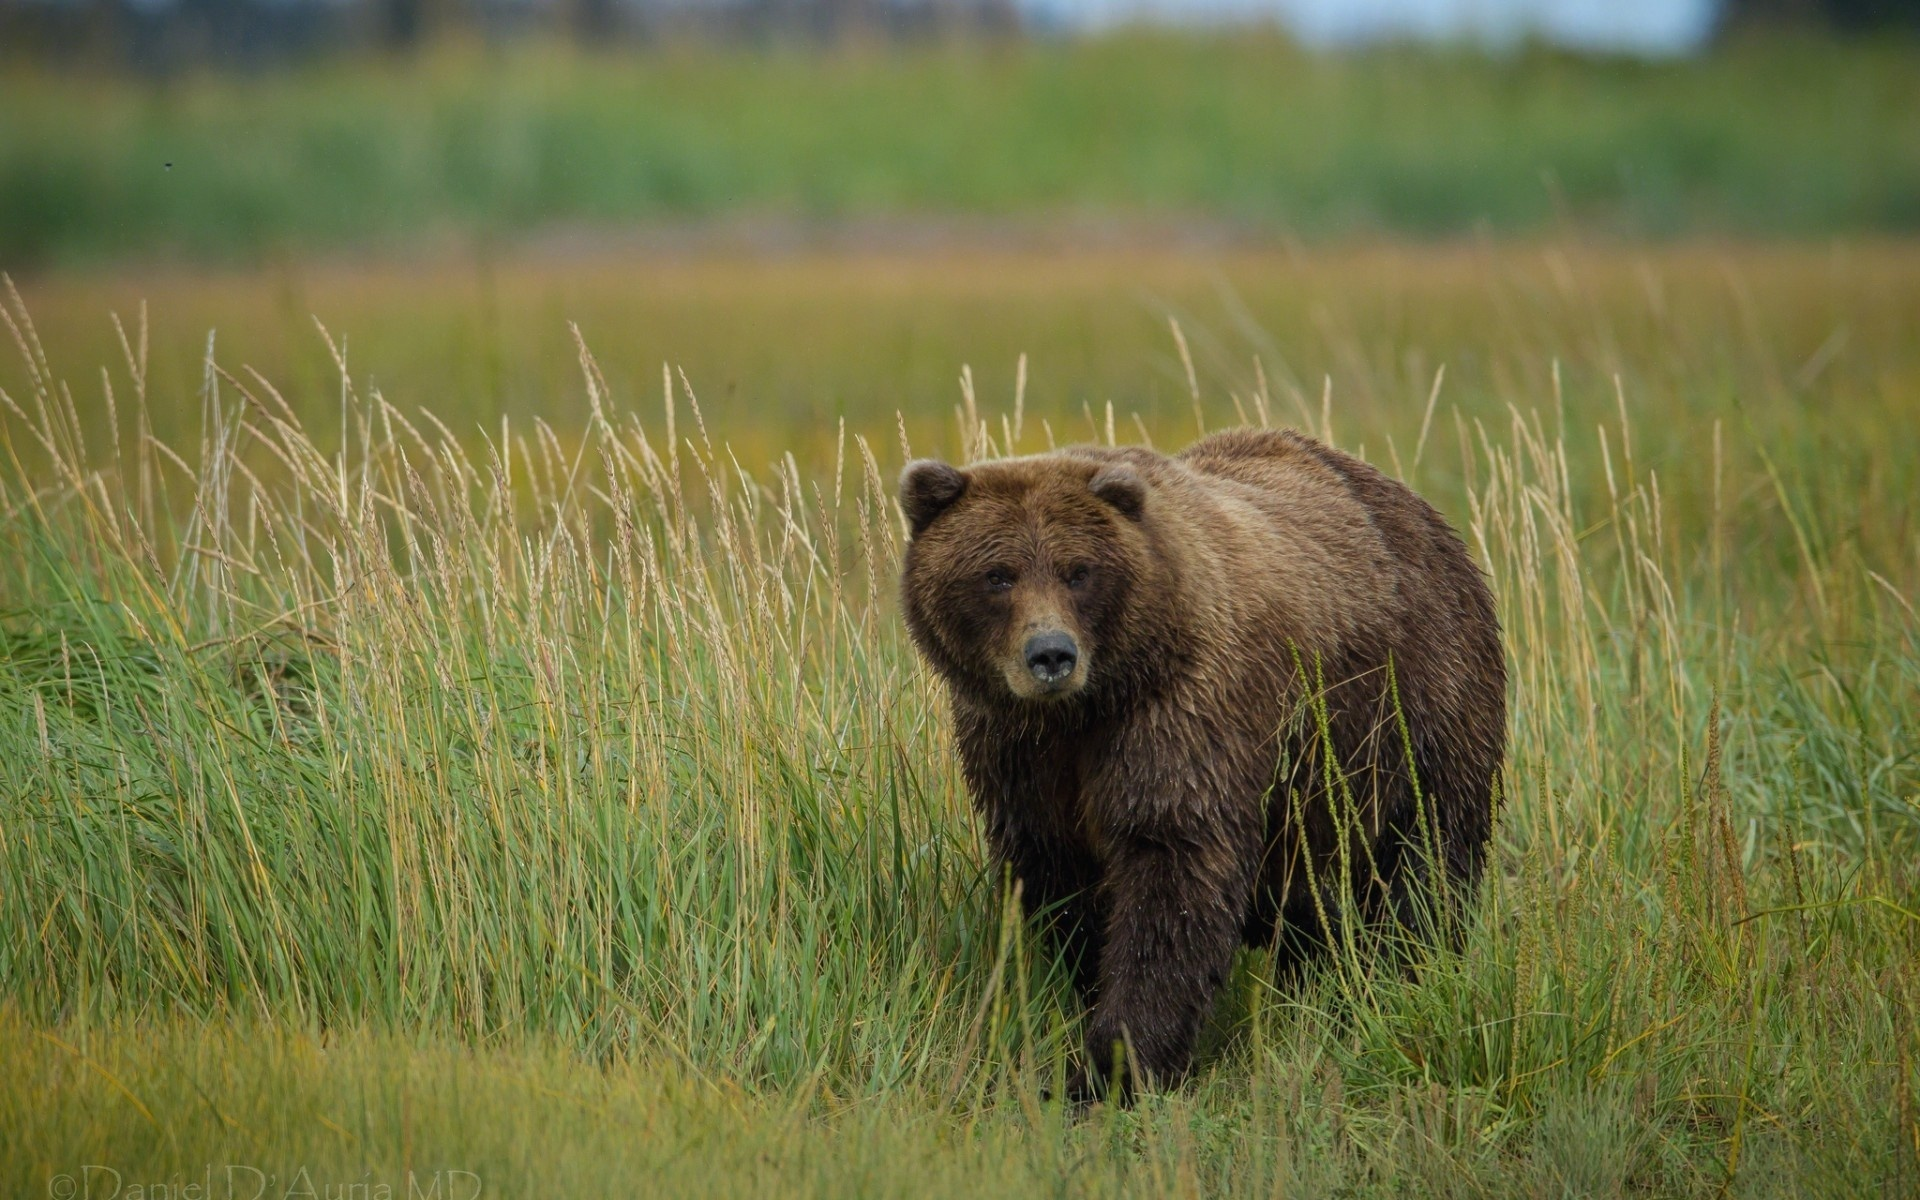 Wallpaper Grizzly Bear In The Grass 1920x1200 HD Picture Image